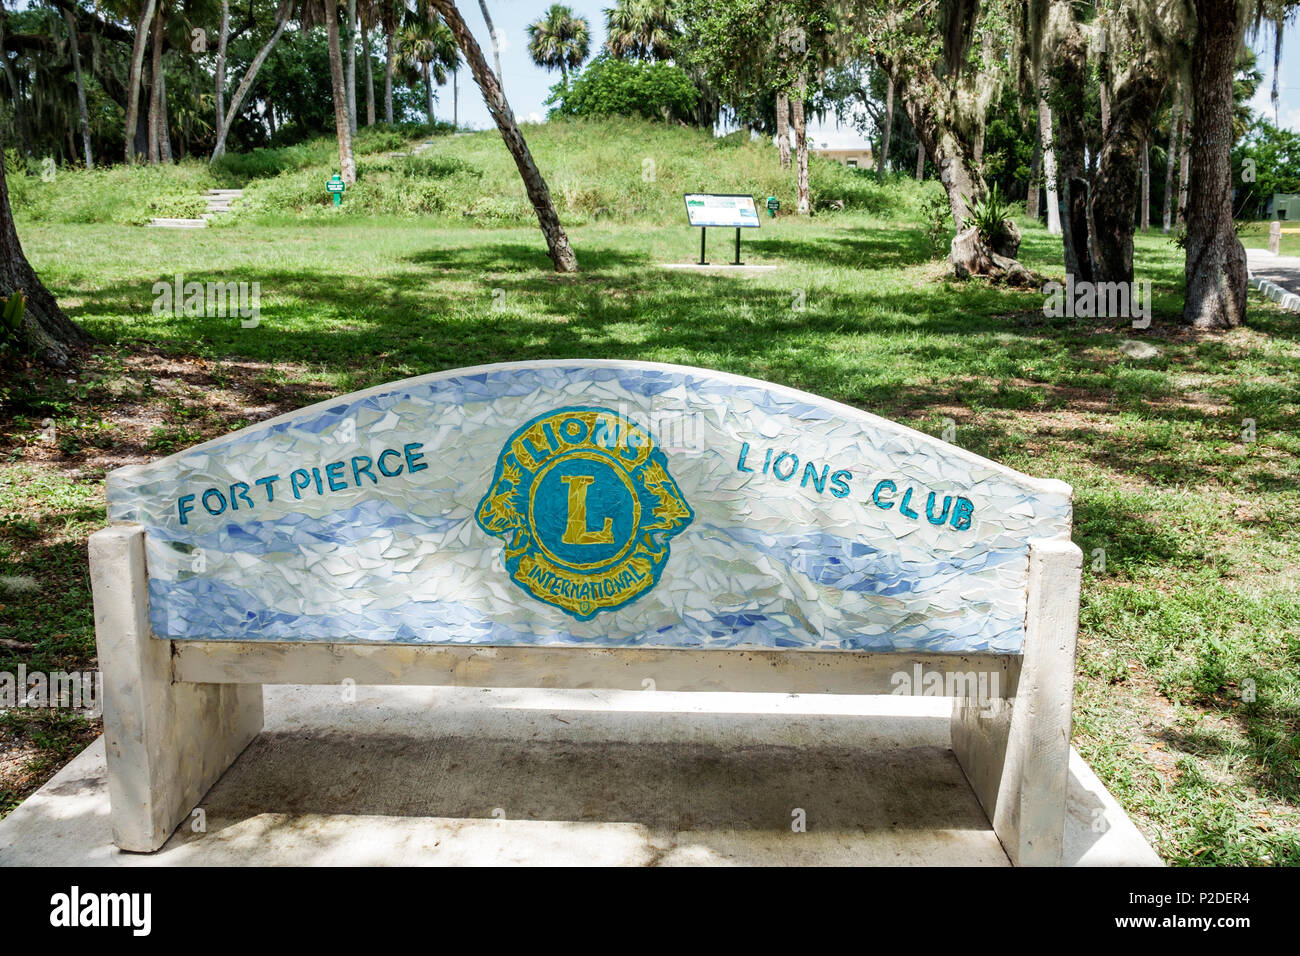 Florida Fort Ft. Pierce Old Fort Park archeological site urban park Ais Indian culture Native American heritage bench sponsor organization Lions Club - Stock Image